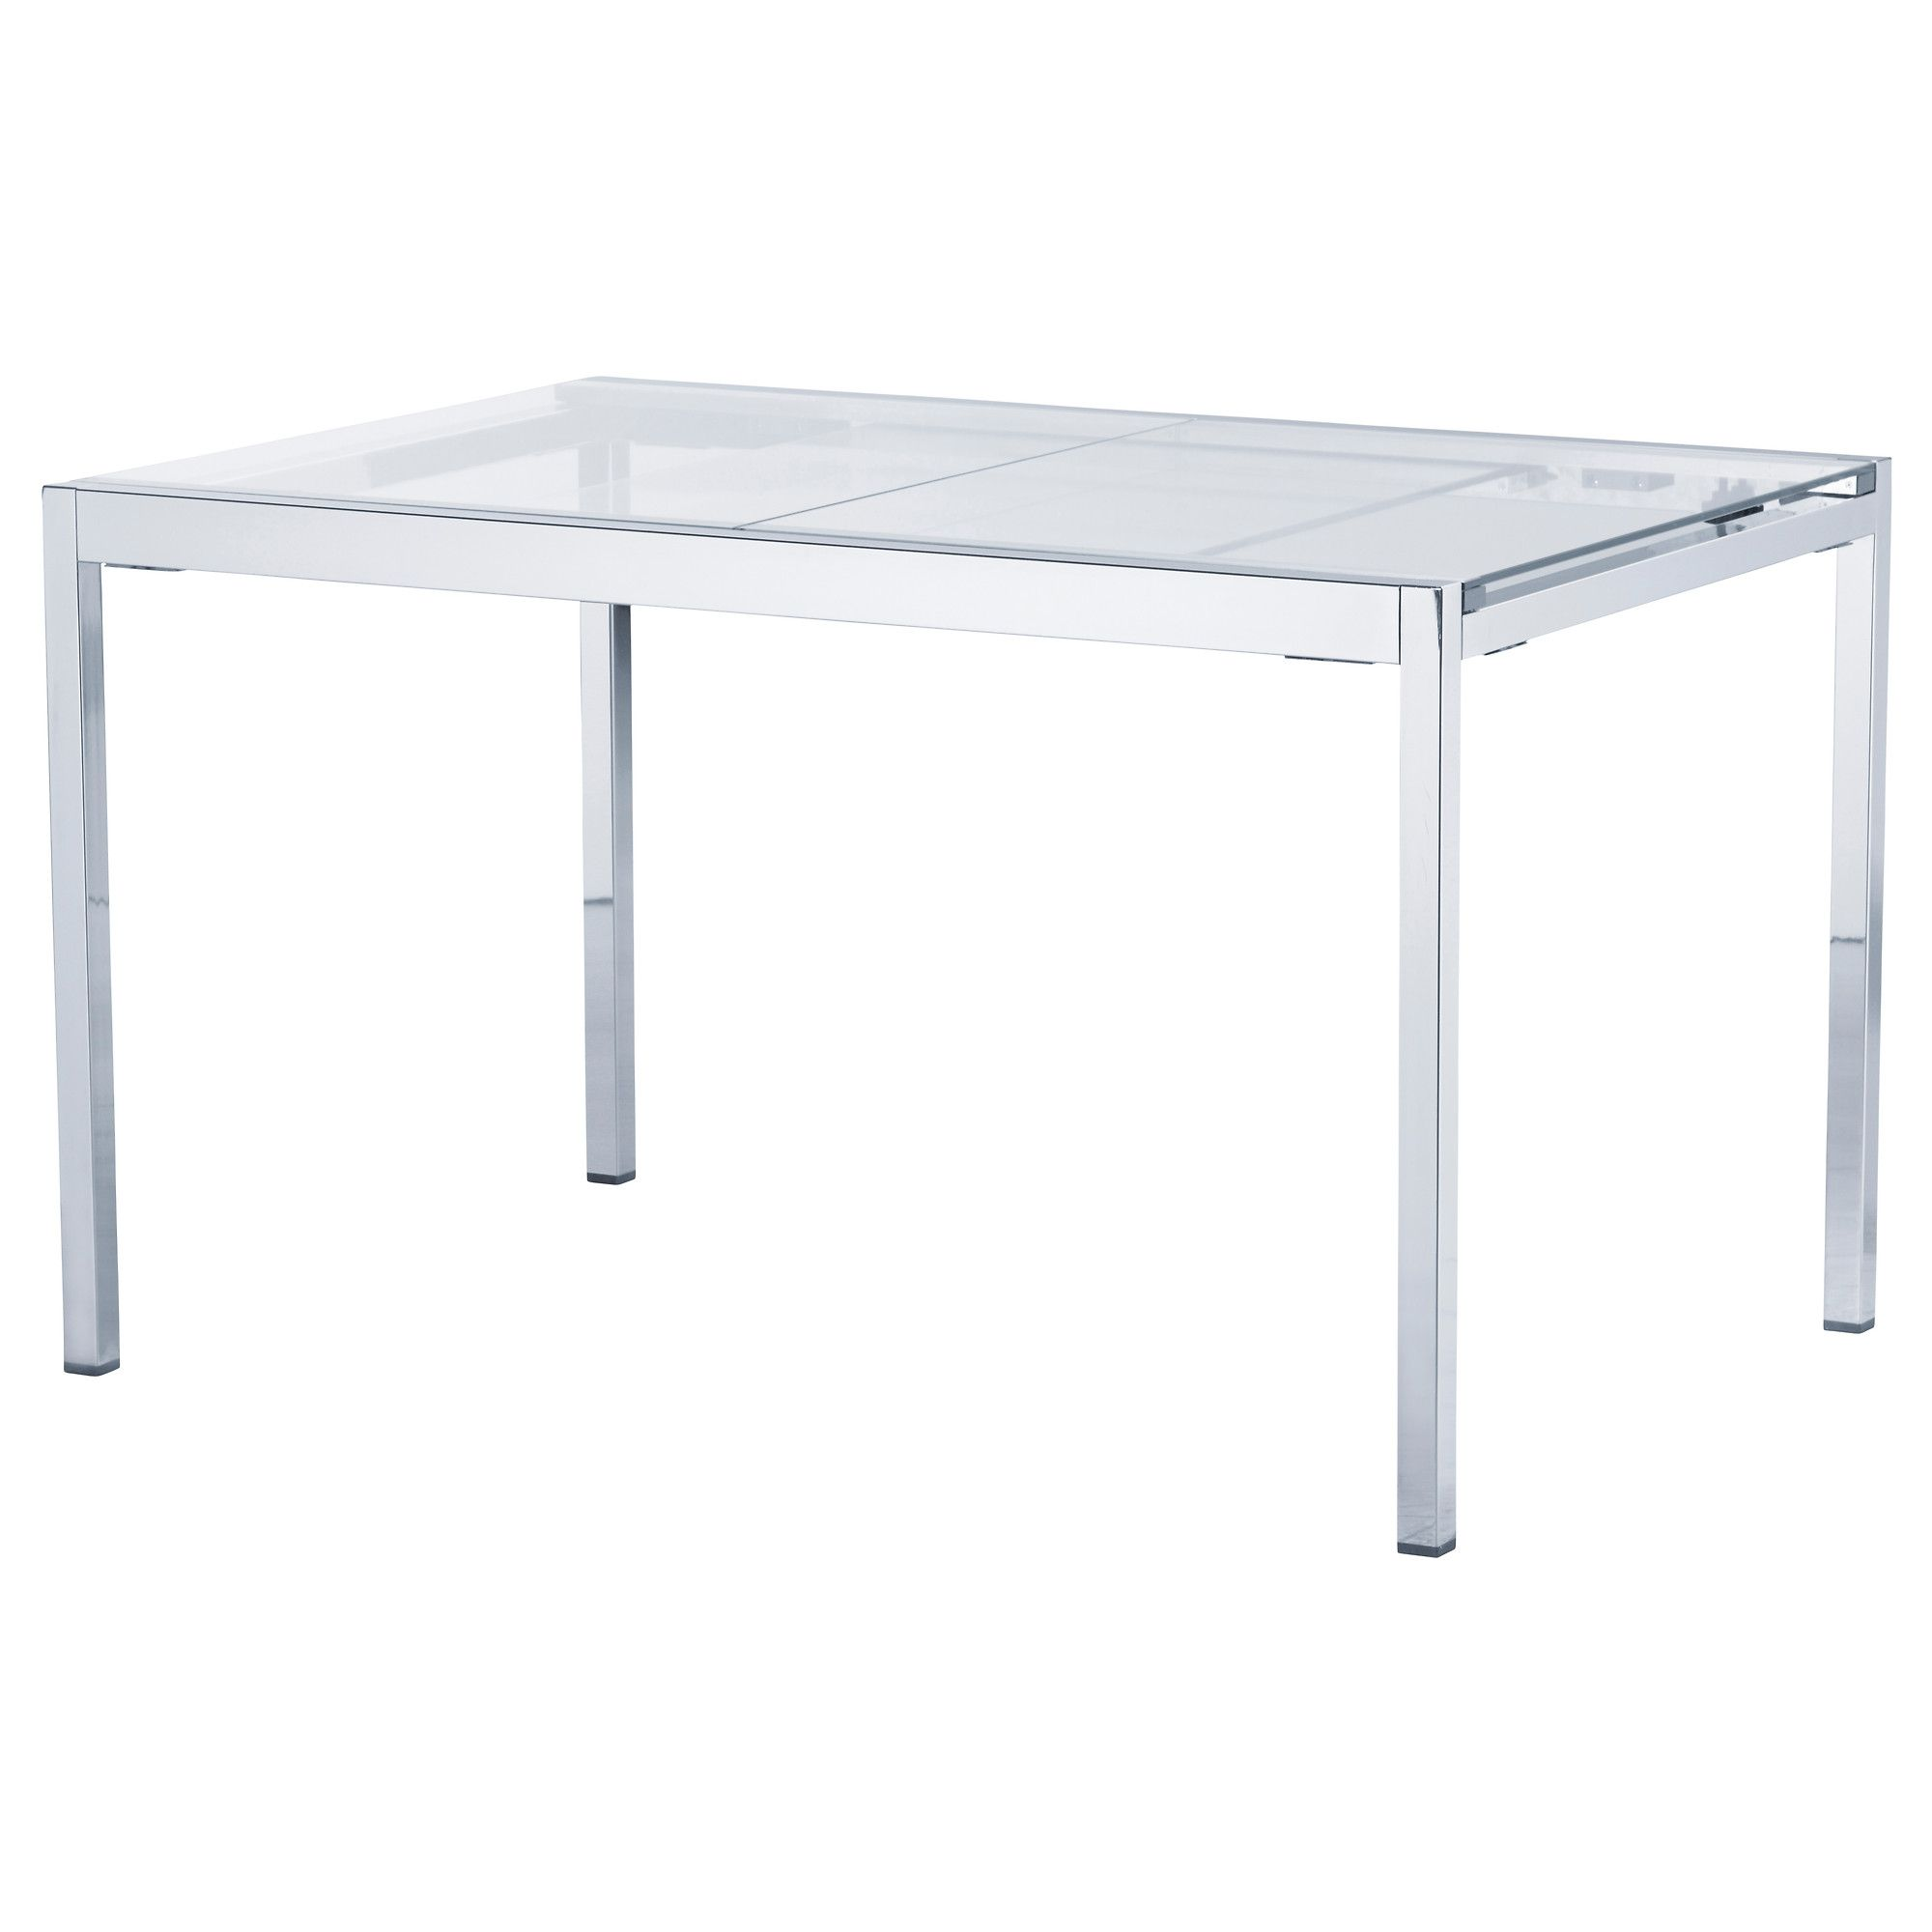 Table Ikea En Verre Glivarp Table Ikea Table Transparent Chromé 349 00 Numéro D